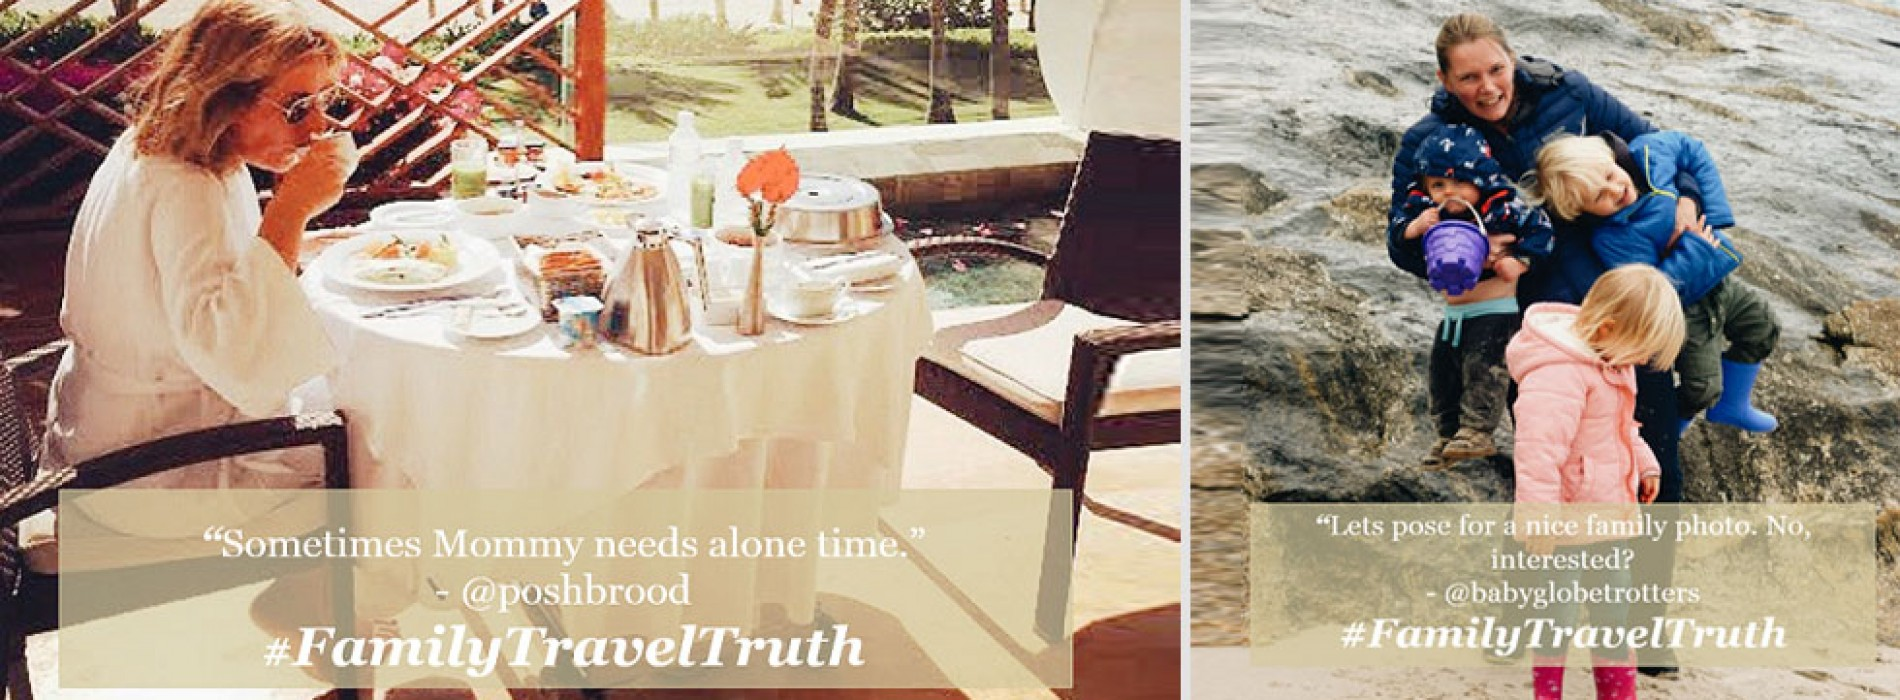 Preferred Hotels & Resorts launches #FAMILYTRAVELTRUTH INSTAGRAM contest